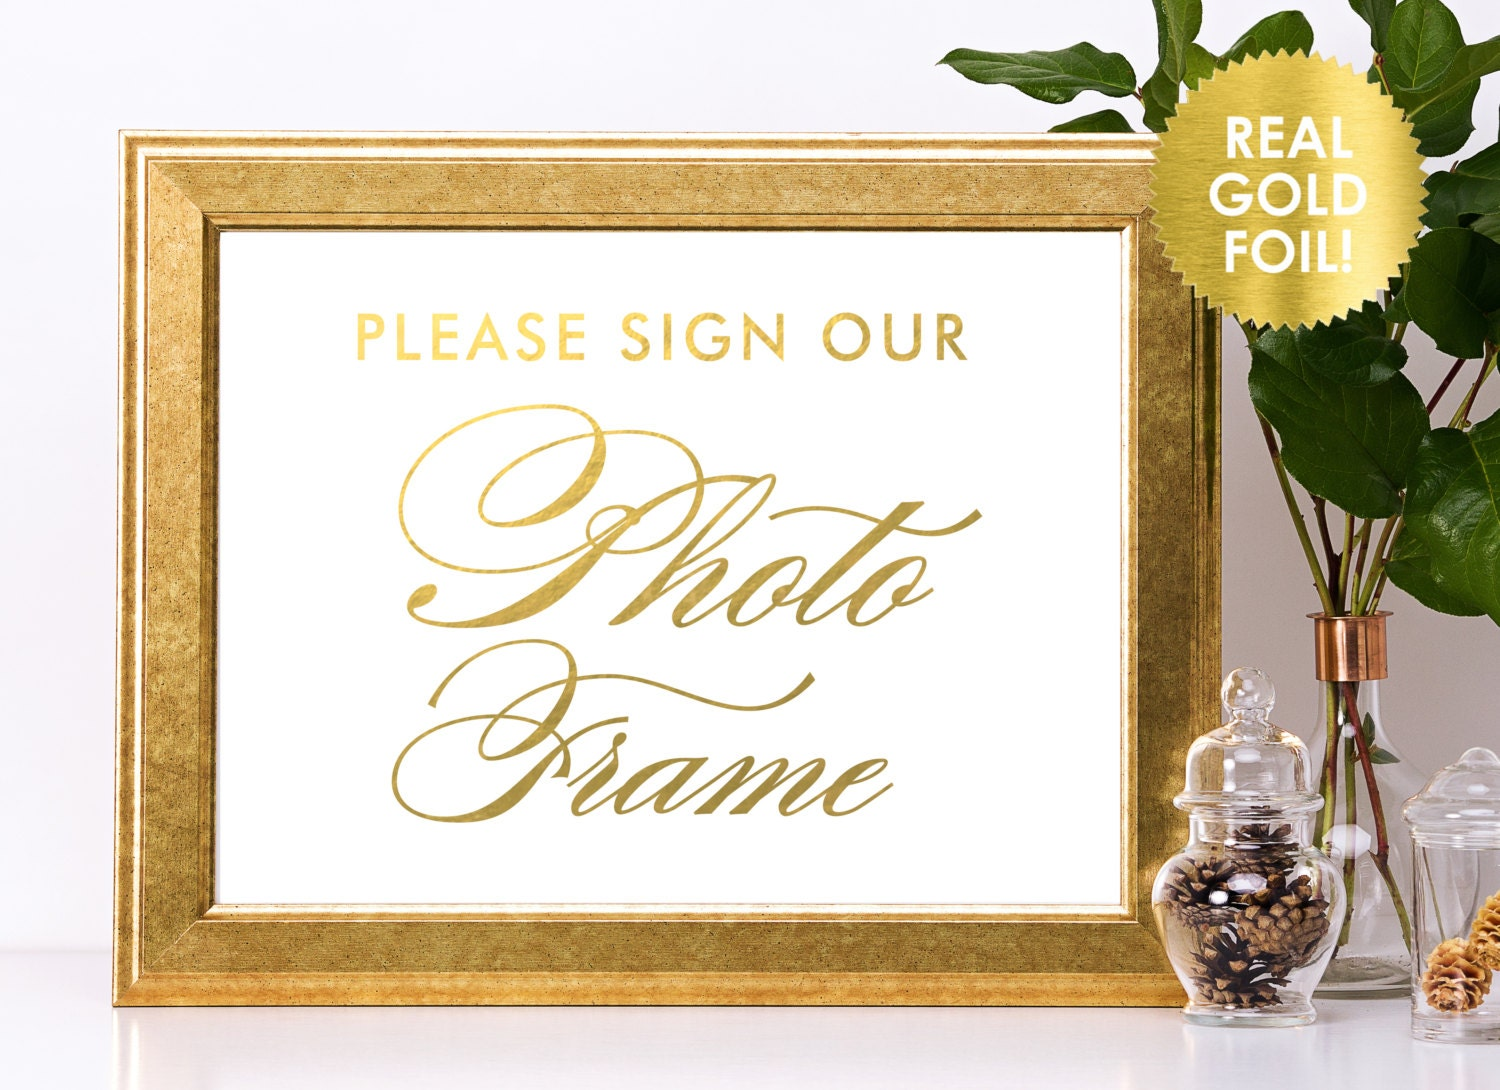 PHOTO FRAME Wedding Signs in Gold Foil / Please Sign Our Photo Frame ...